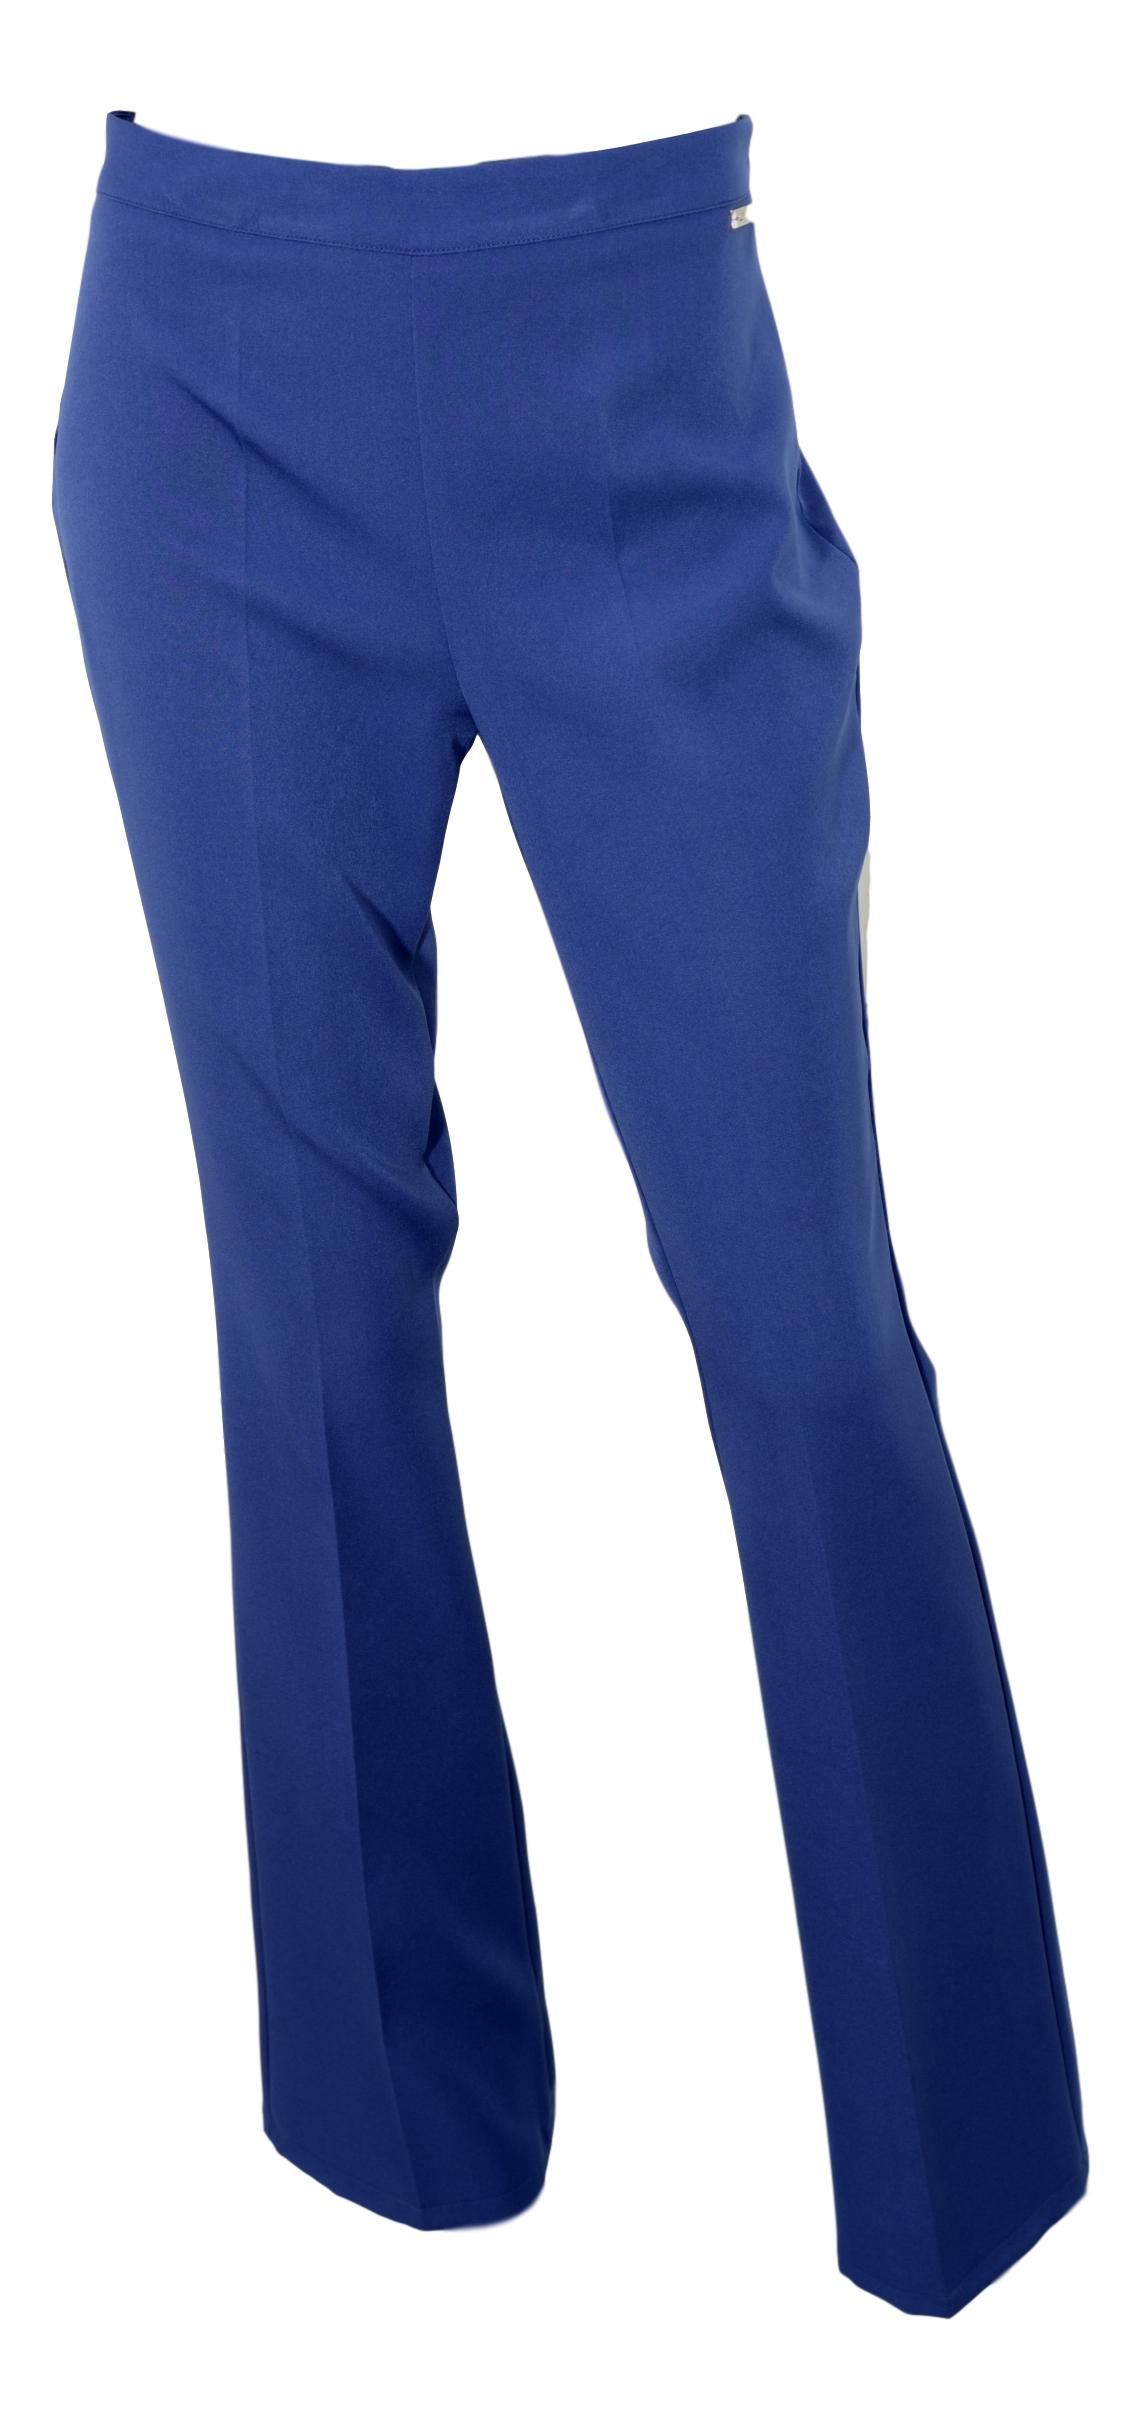 LISA KOTT PANTALONE DONNA CURVY STYLE 13714 COLORE BLUETTE MADE IN ITALY